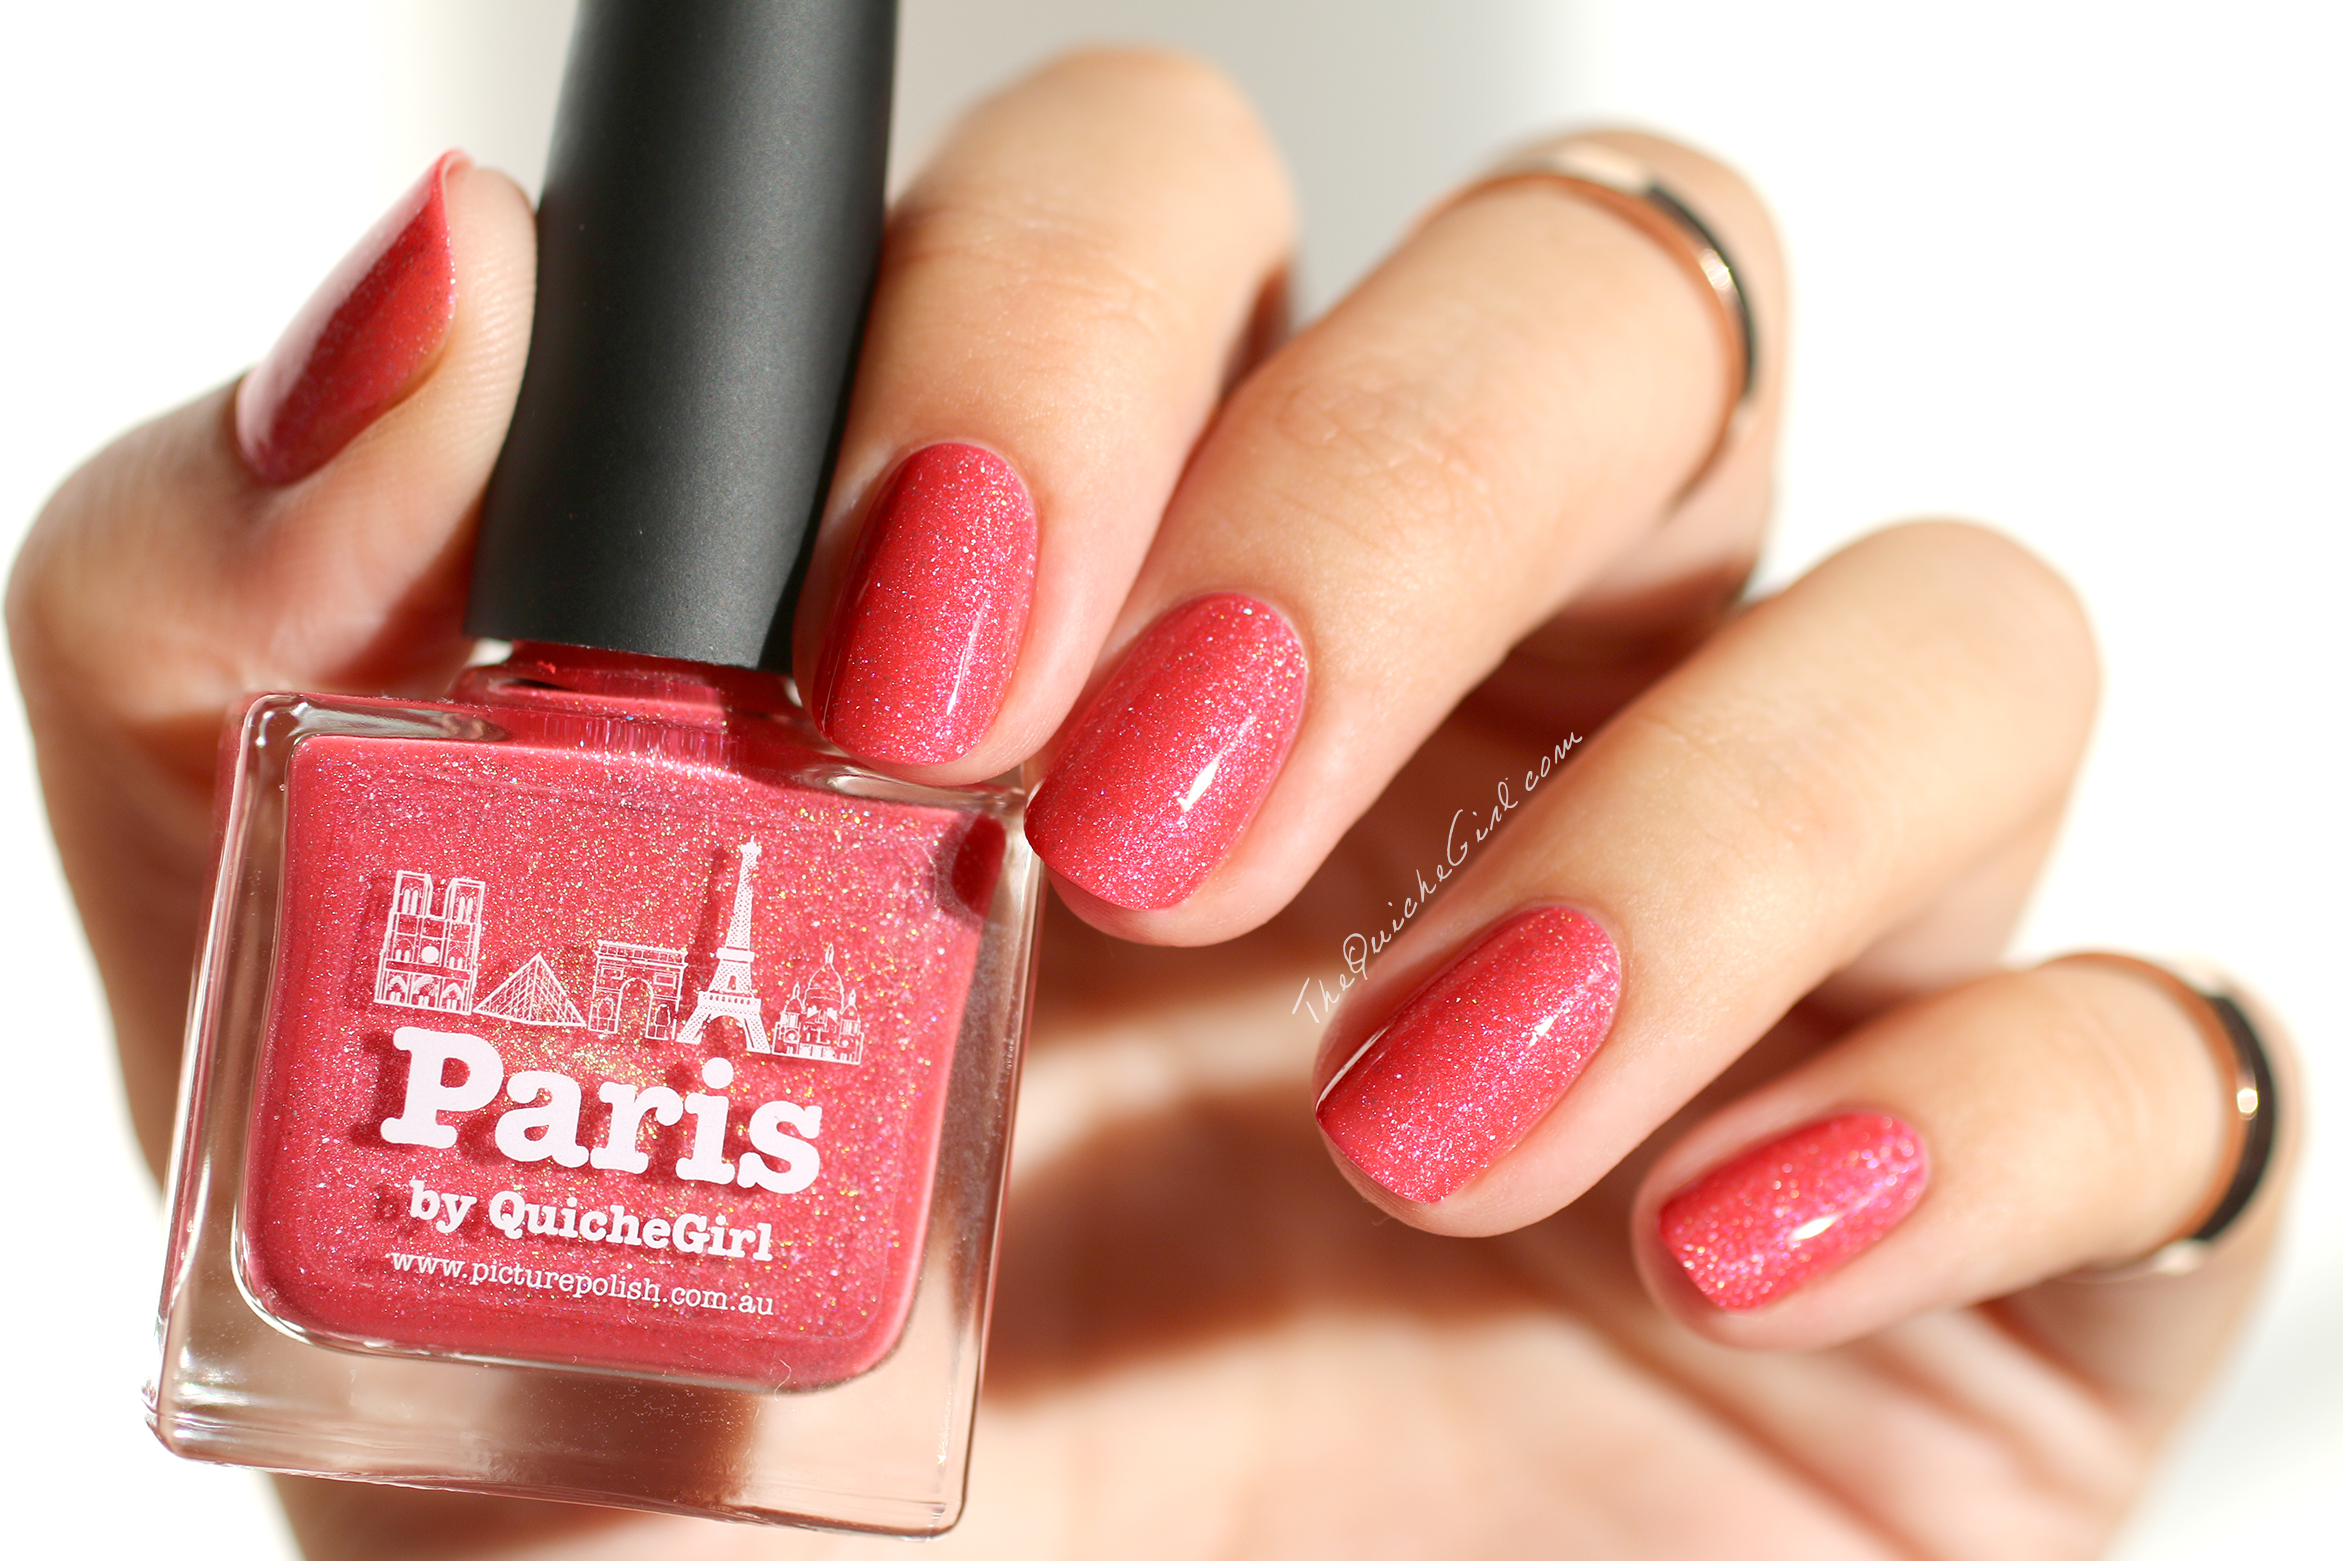 Paris, Coral, jelly scatter holo, Picture Polish, QUicheGirl